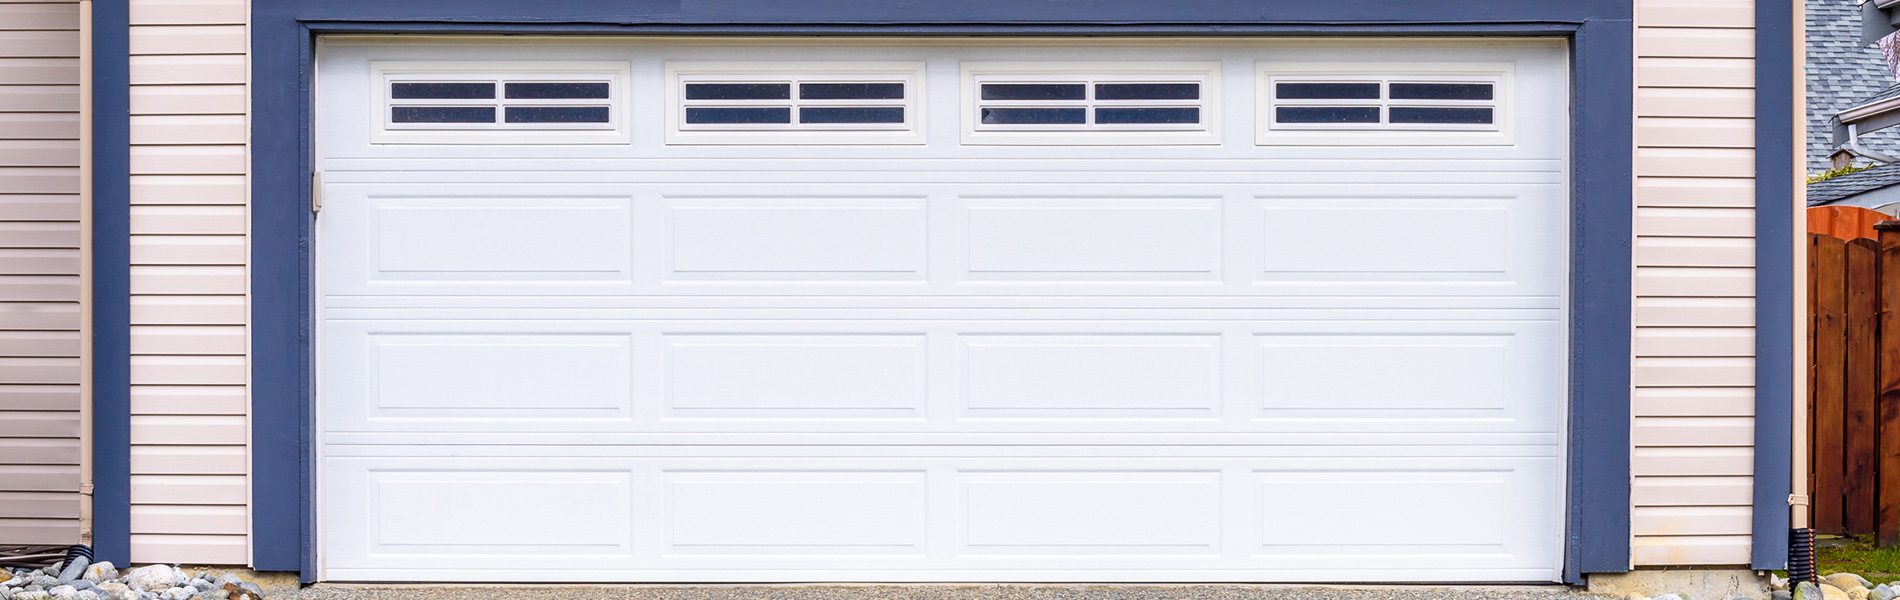 Metro Garage Door Repair Service, Highland, MD 301-349-6079